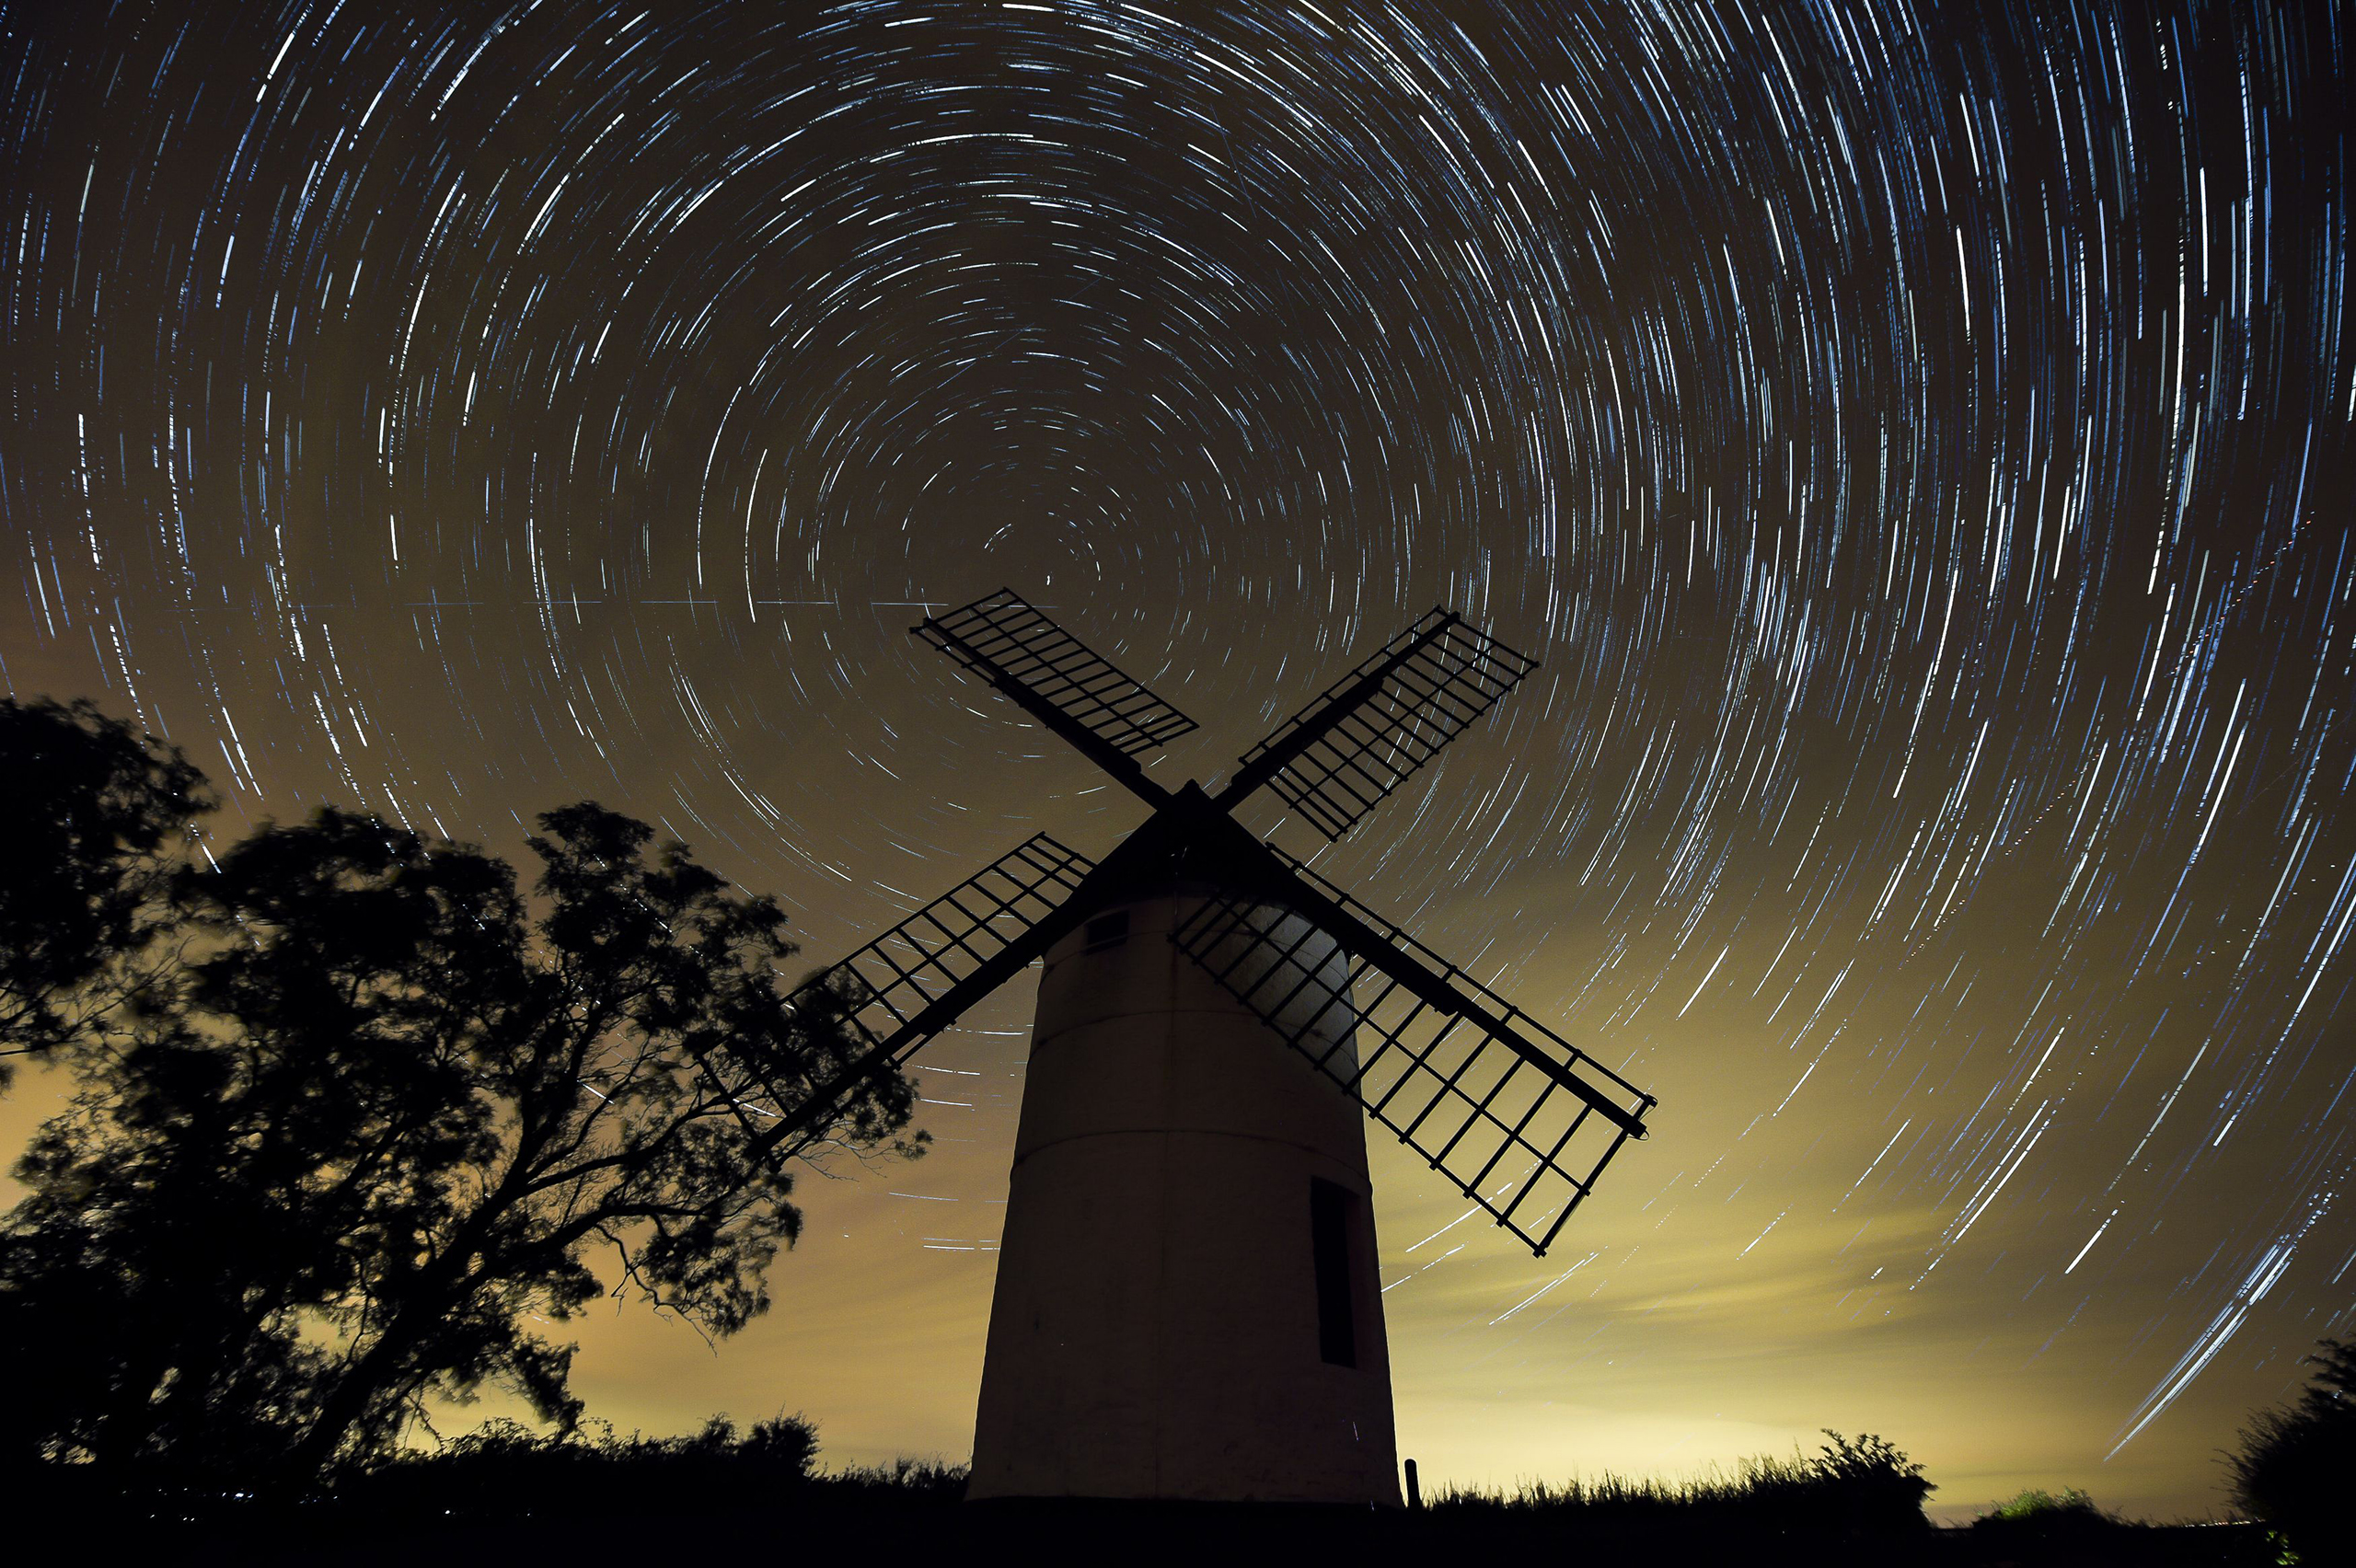 A composite image made from 726 photographs taken over three hours, showing the rotation of the earth around Polaris, the North Star, in the night sky over Ashton Windmill, Somerset ahead of the Perseid meteor shower, Aug. 10, 2016.